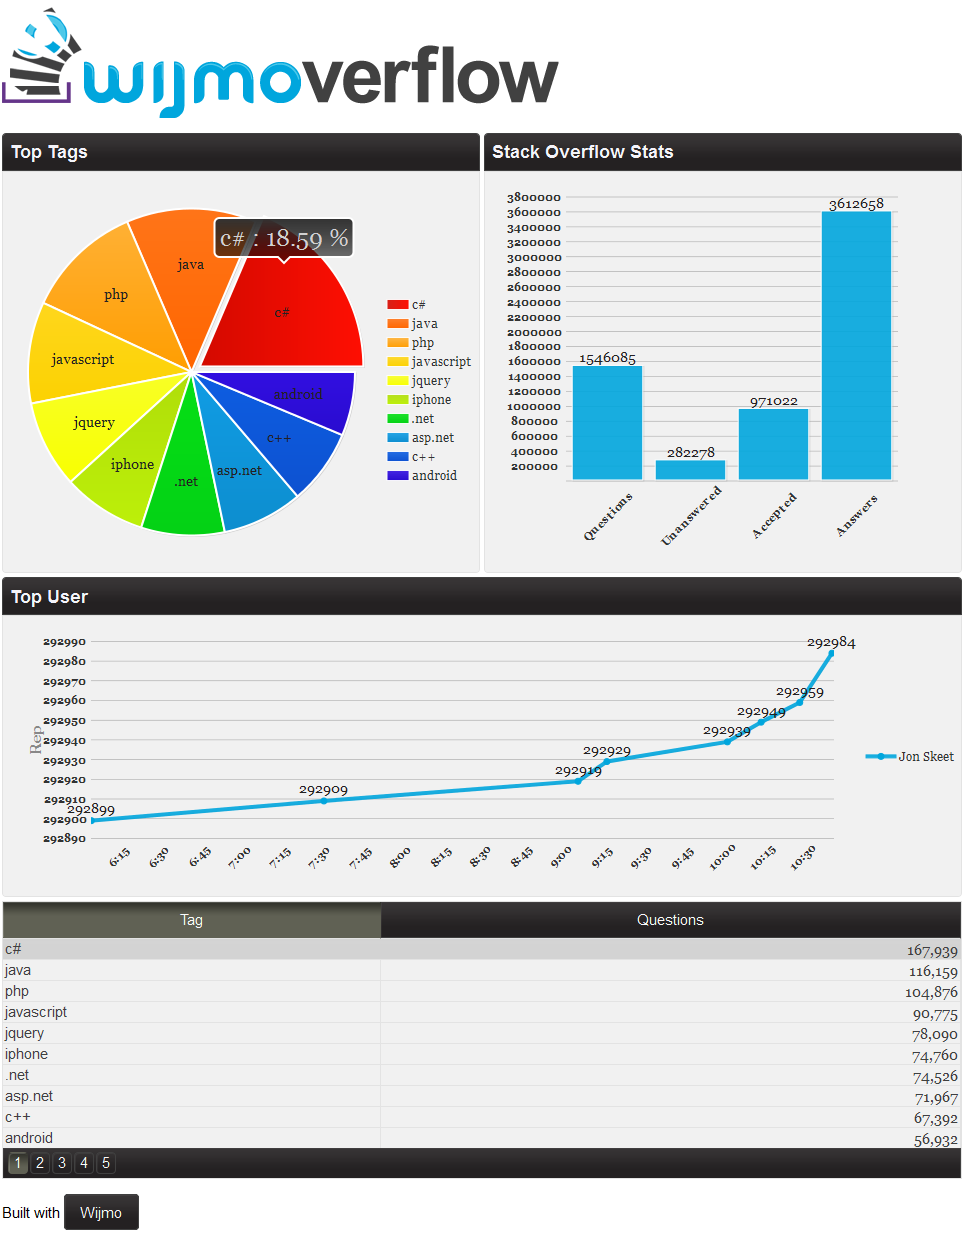 Html5 charting with jquery and svg wijmo bar chart line chart and pie chart you can play around with the stackoverflow dashboard online here is a snapshot of how it looks nvjuhfo Images